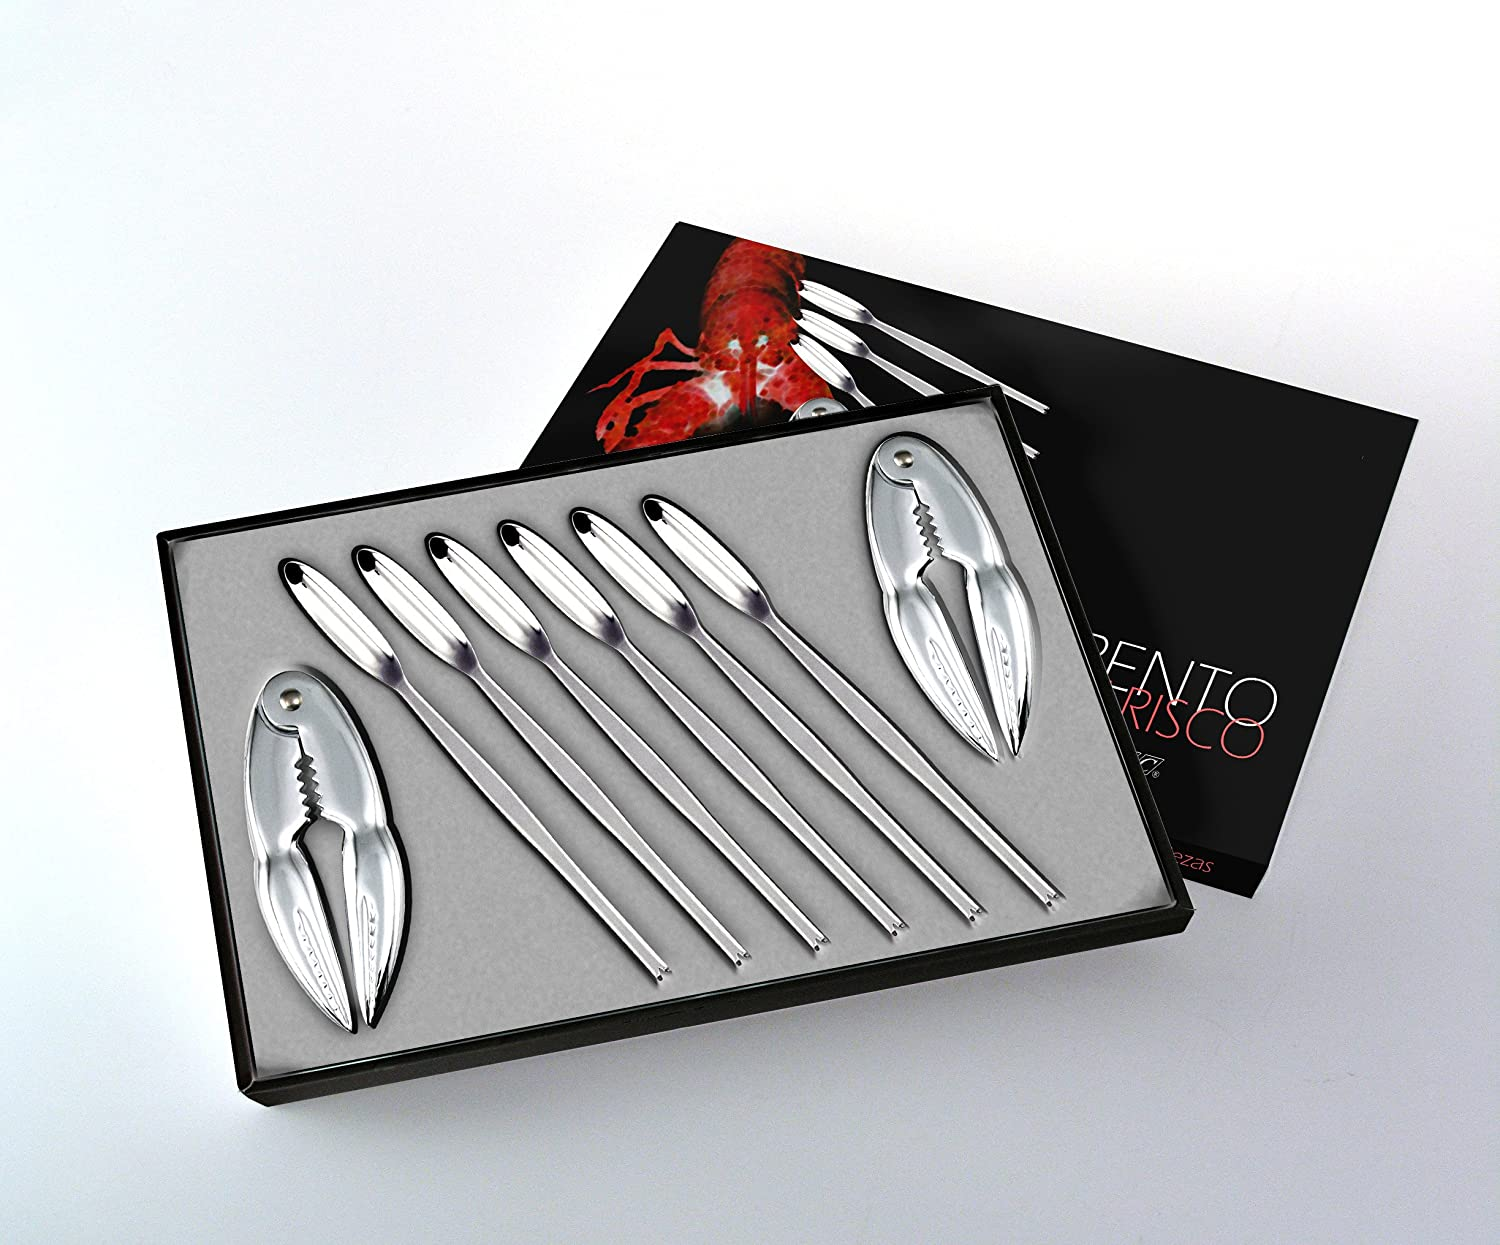 Seafood cutlery set in high quality stainless steel. 2 seafood crackers and 6 Seafood forks CRC